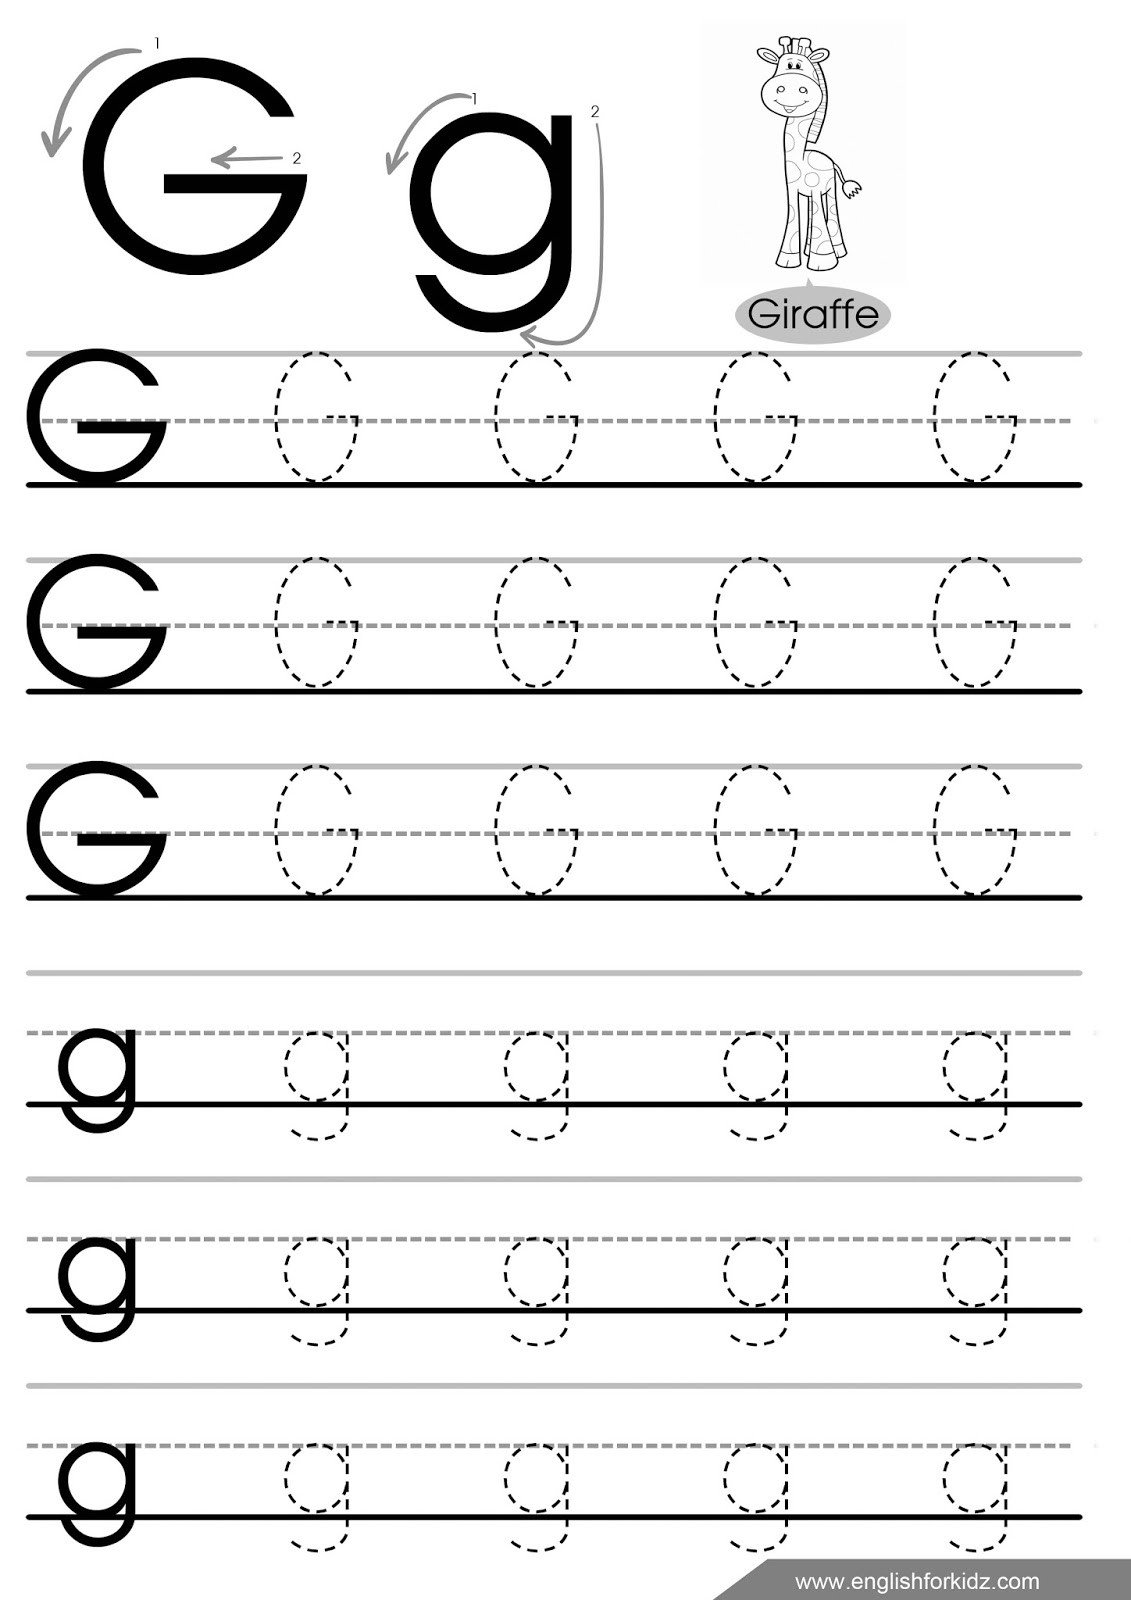 Letter G Tracing Worksheets Preschool Letter Tracing Worksheets Letters A J